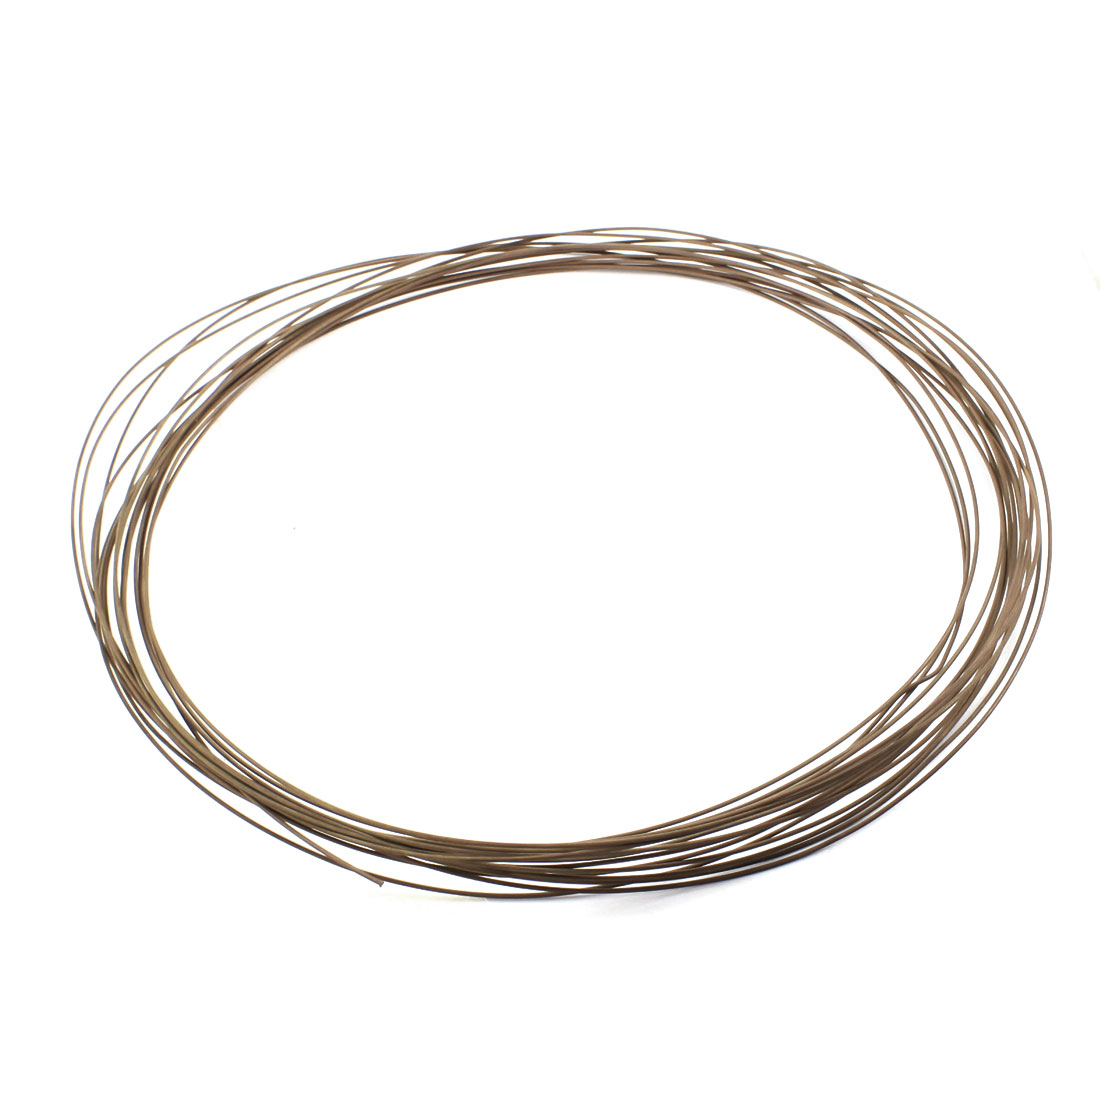 15M 50ft Length 1.4mm Diameter AWG15 Gauge Resistance Heating Coils Resistor Wire